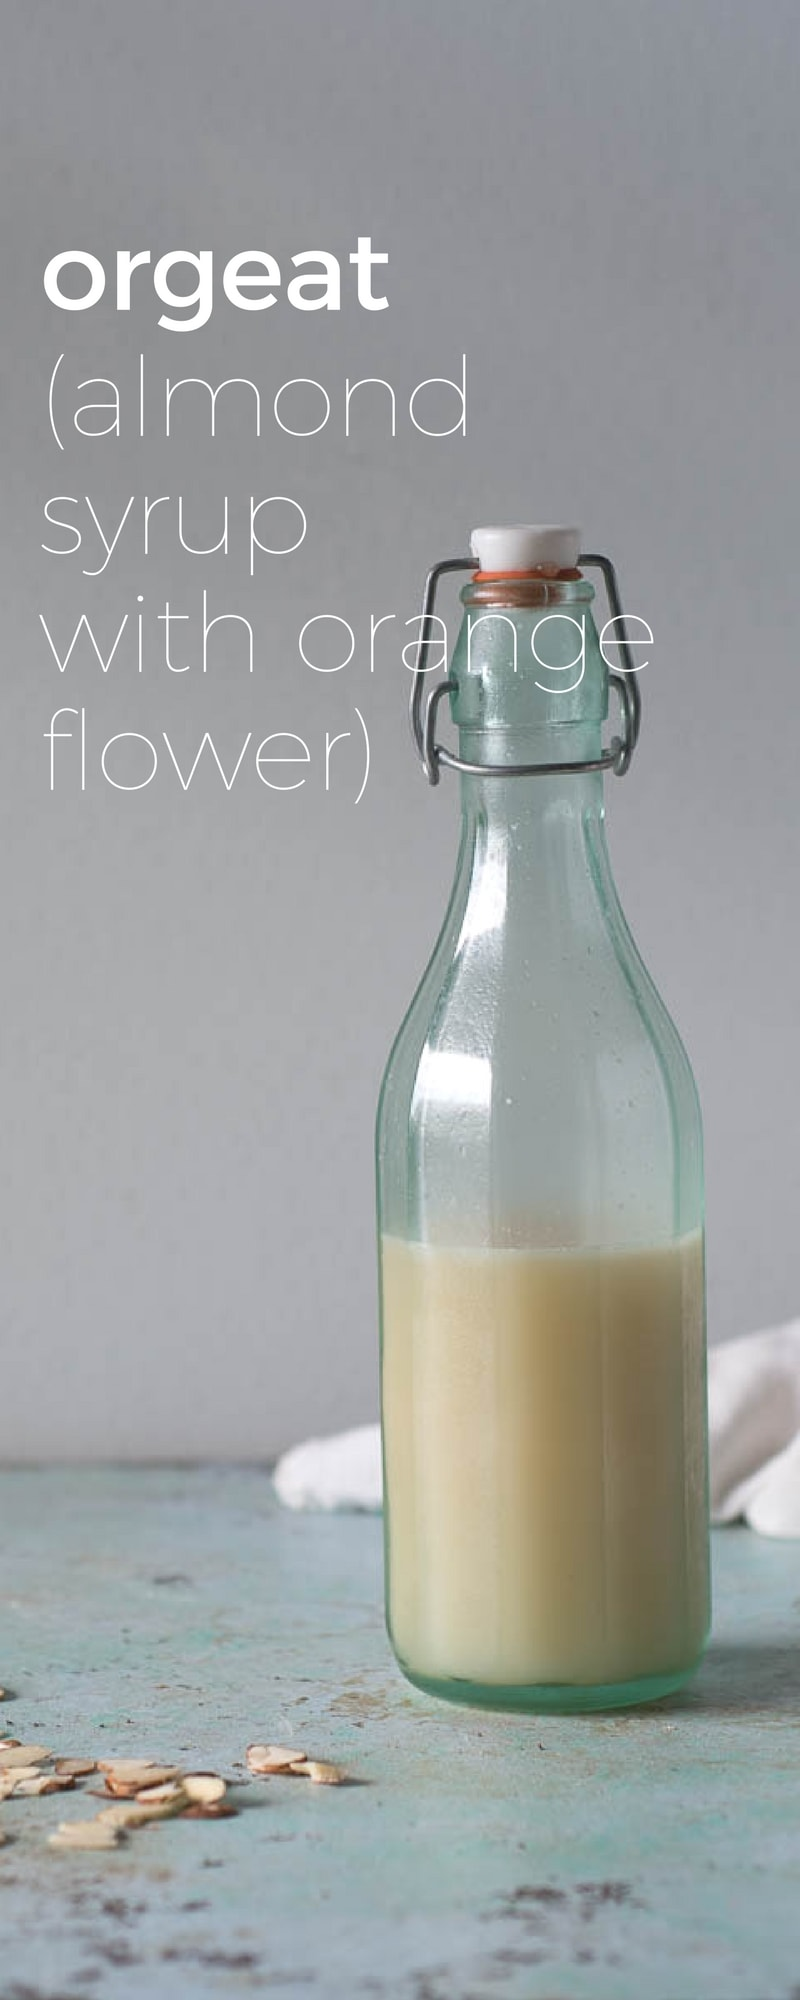 Orgeat. An almond syrup with a hint of orange flower water and a classic cocktail ingredient in the Mai Tai. So easy to make at home.